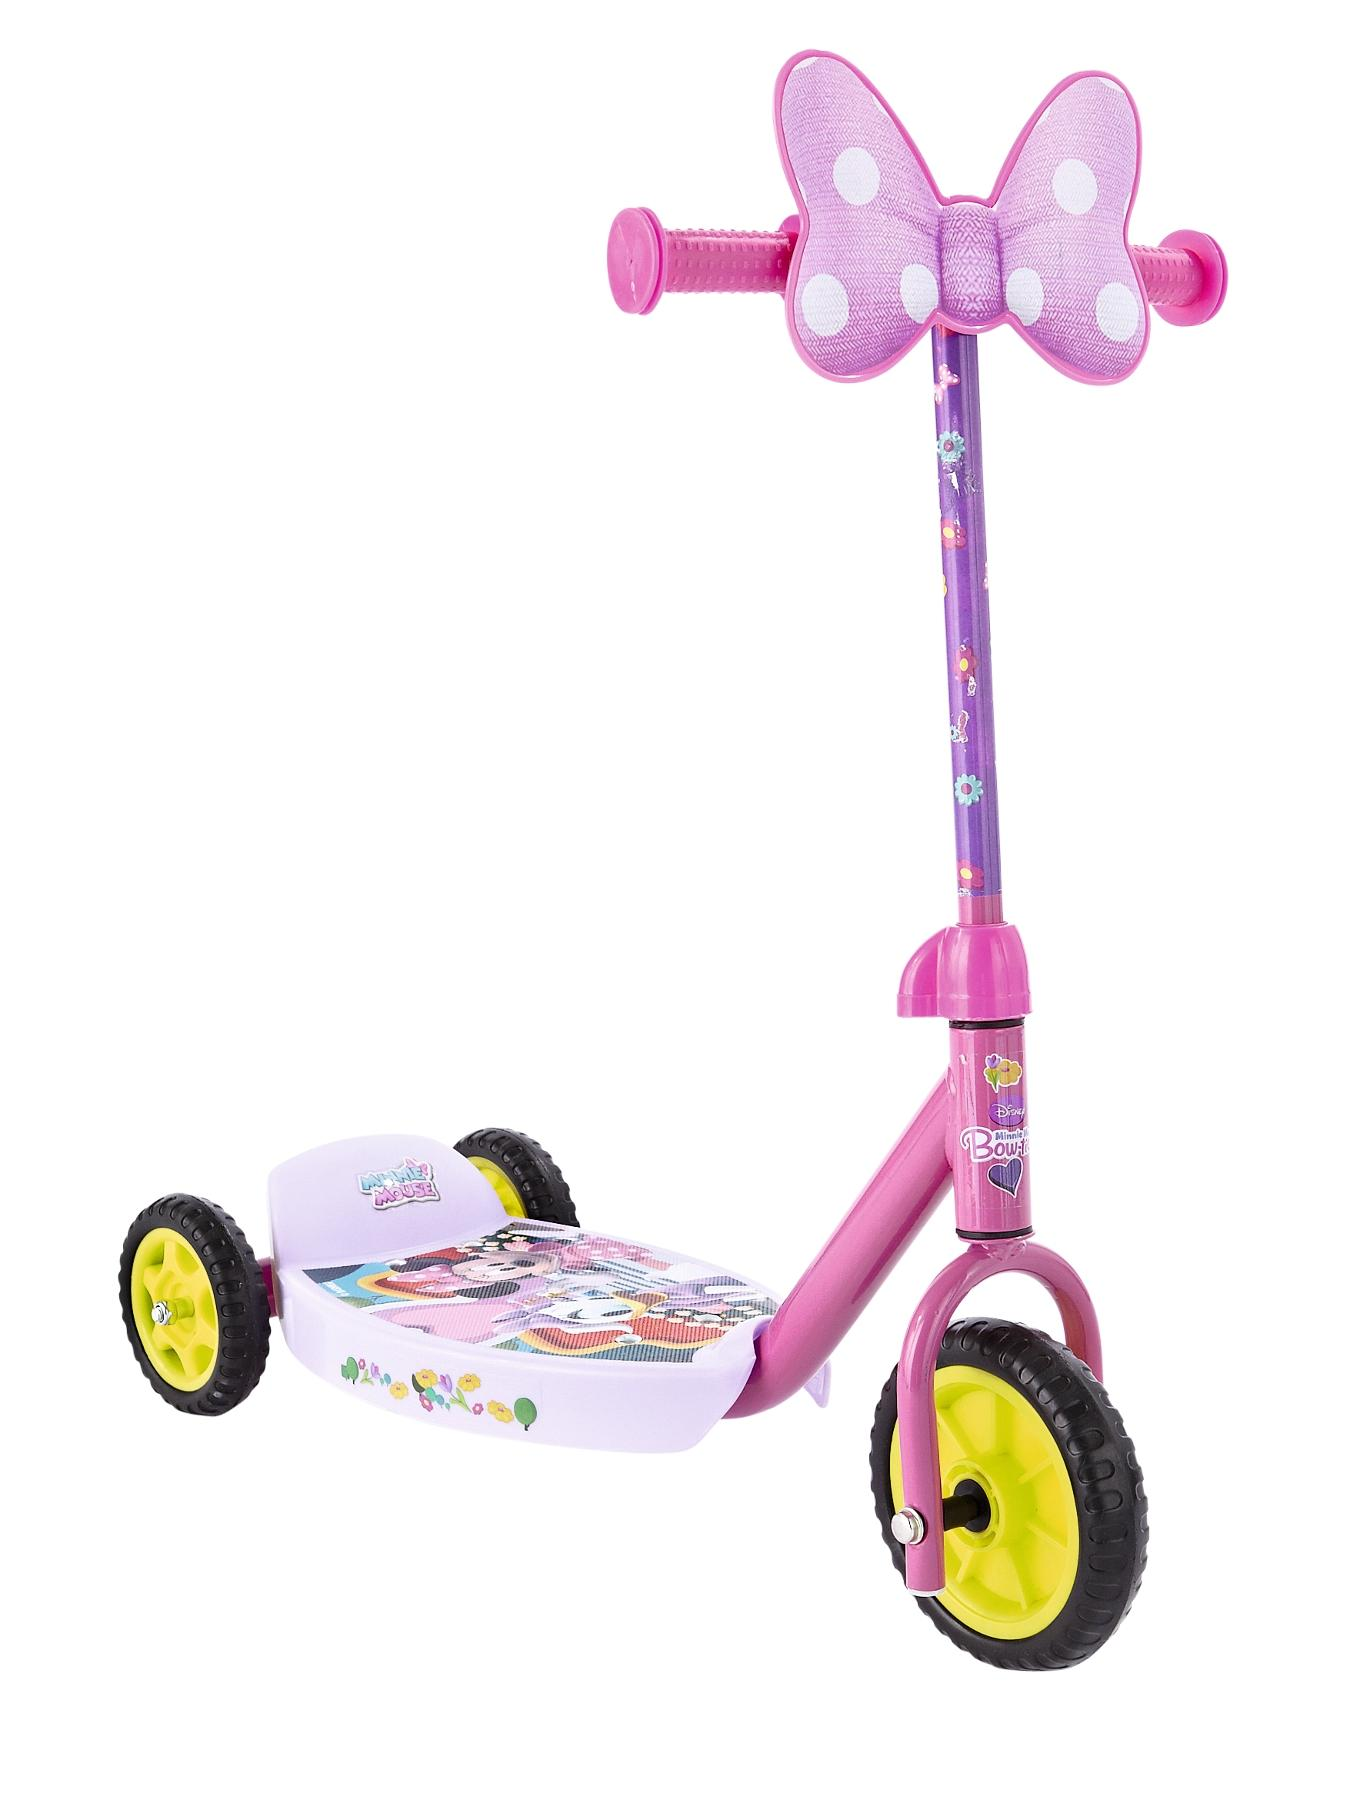 Minnie Mouse Bow-tique Wide Ride Scooter